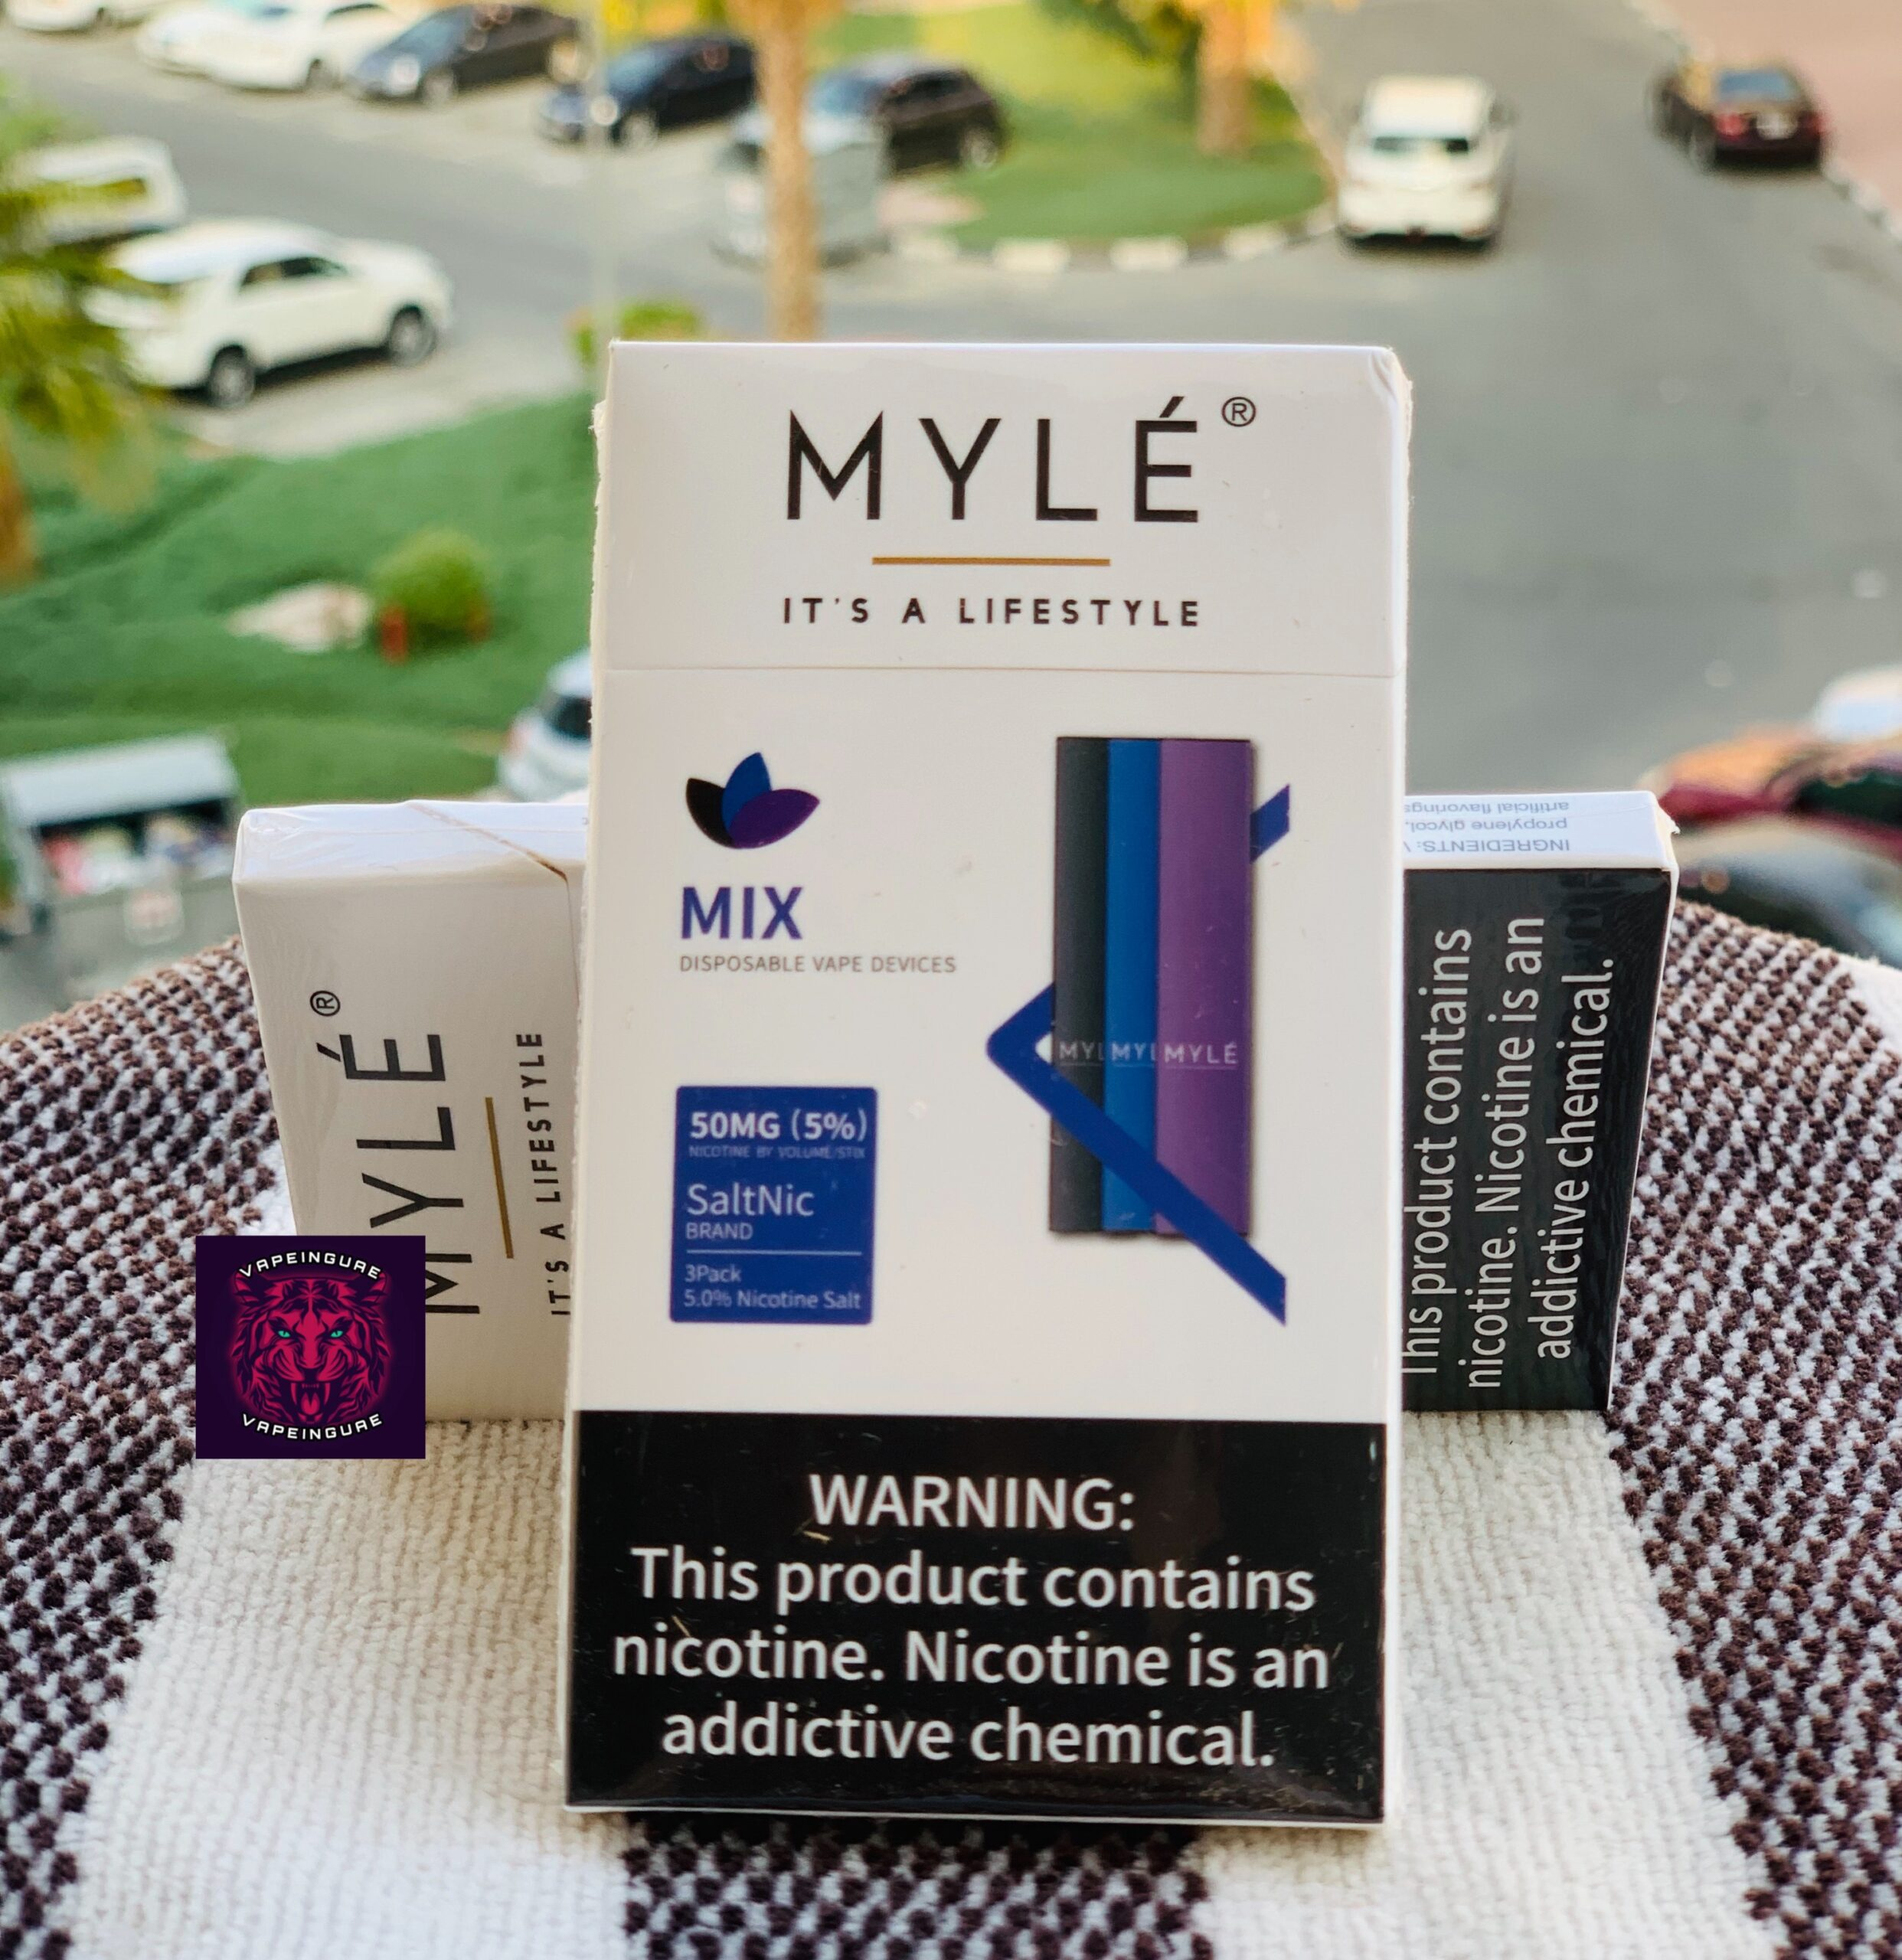 MYLE DISPOSABLE DEVICE MIX NEW